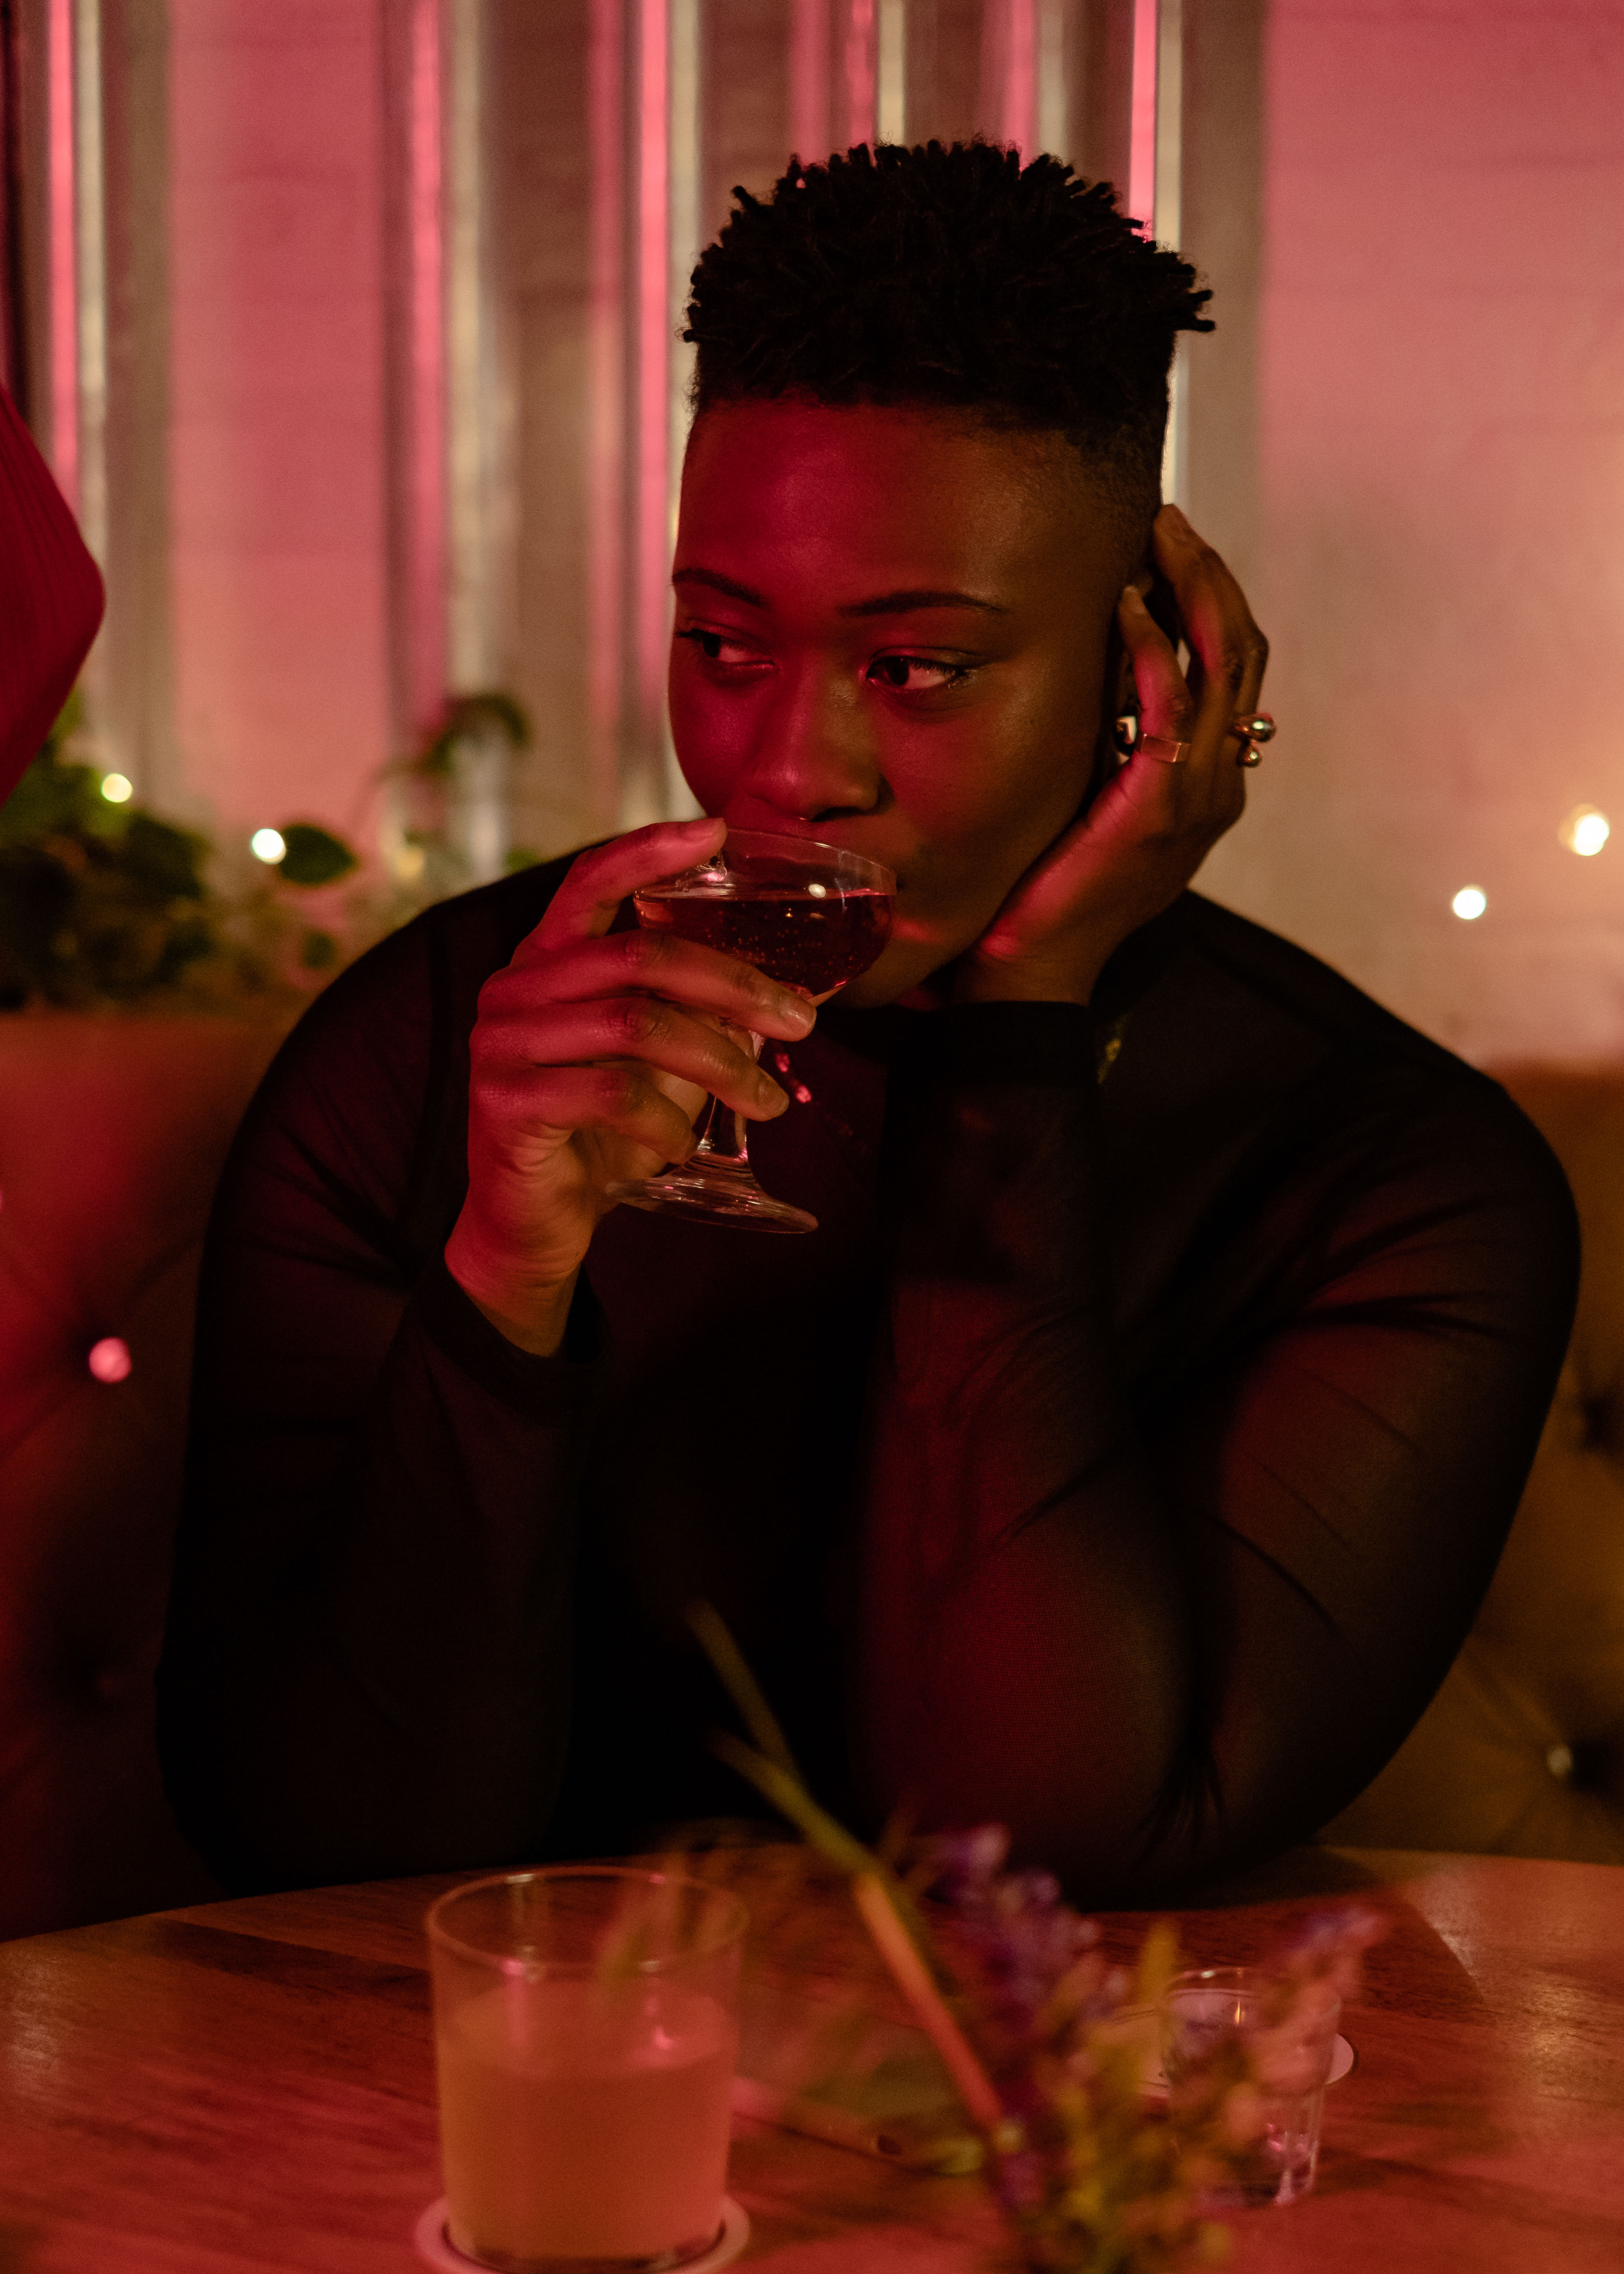 A non-binary person sipping a drink at a bar